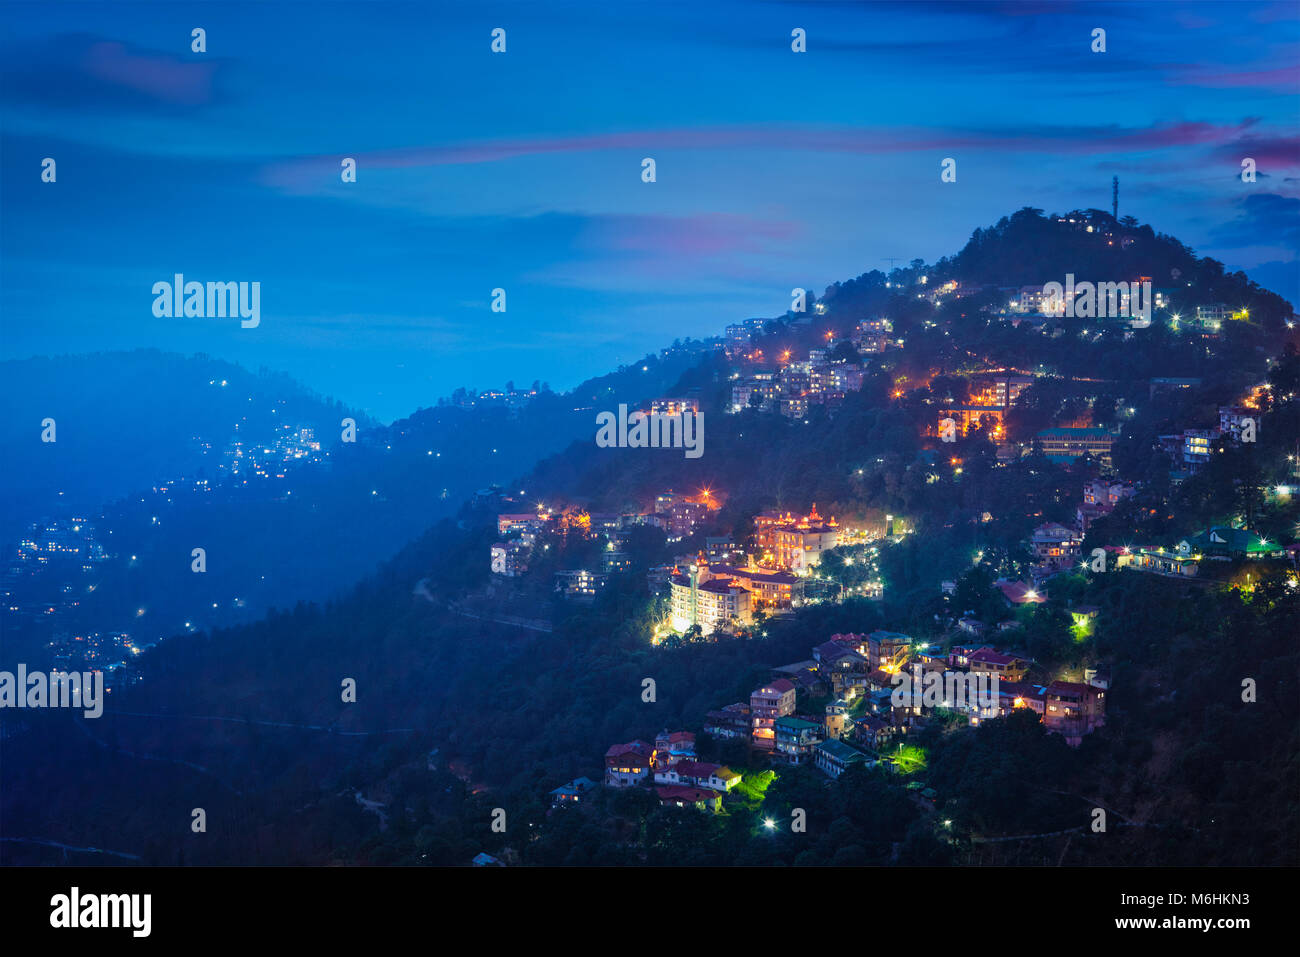 Night view of Shimla town, Himachal Pradesh, India Stock Photo